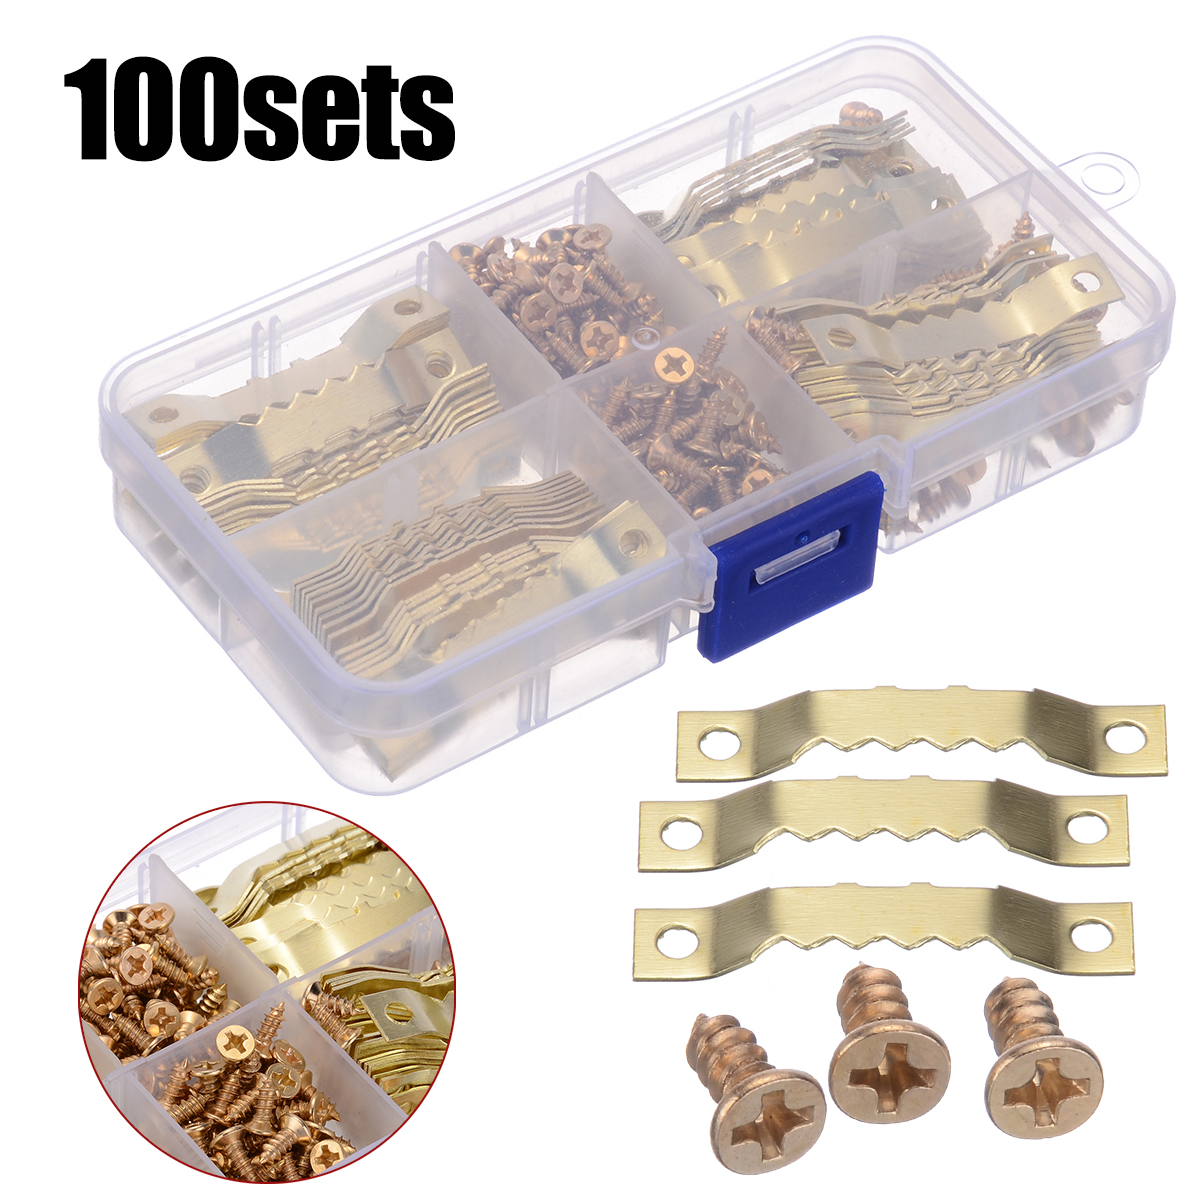 100 Sets Gold Saw Tooth Hangers Canvas Picture Frame Hanging Hooks With Screws Sawtooth Hangers 45*8mm DIY Hardware Tools